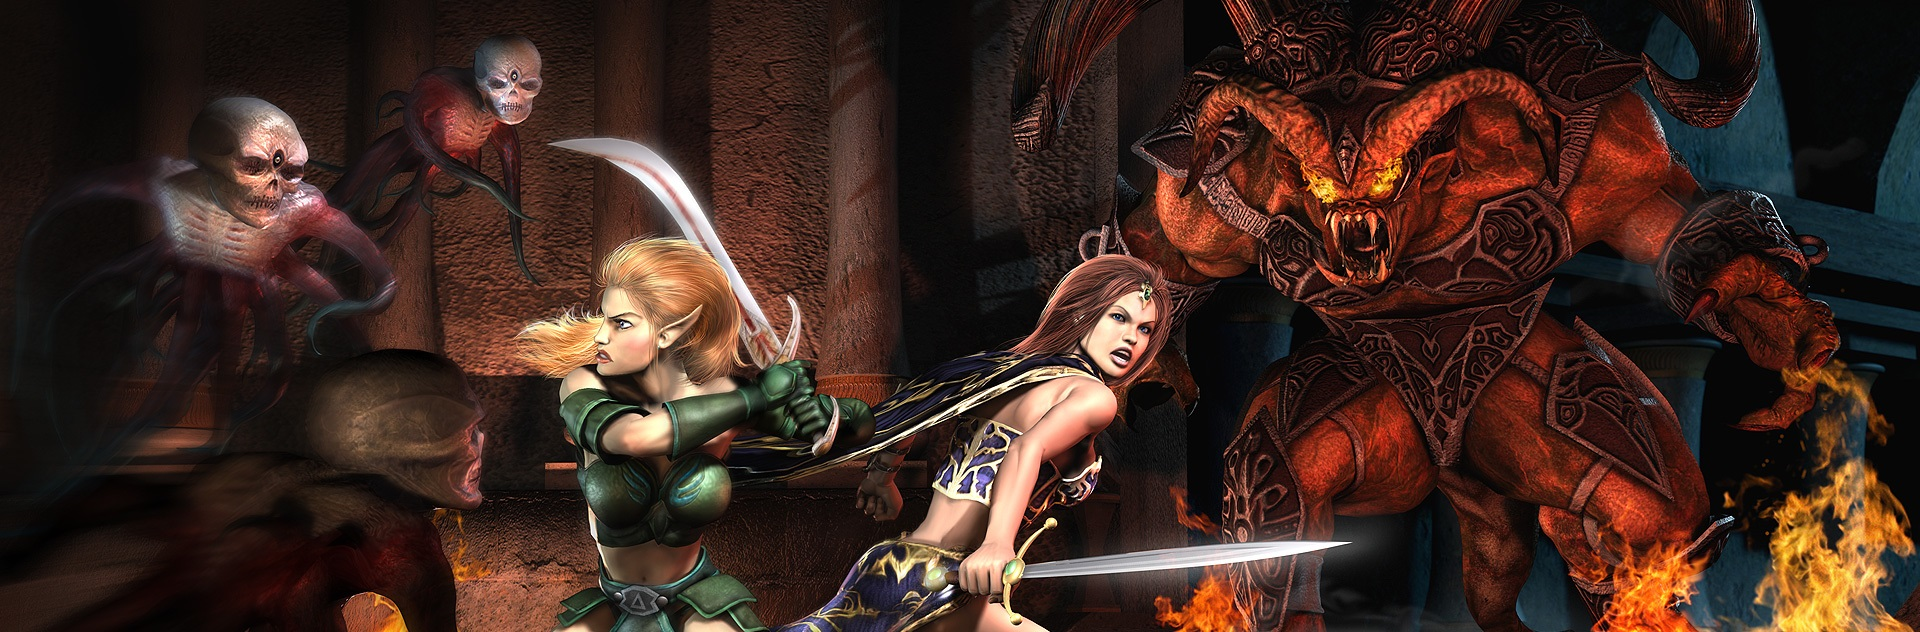 everquest_wallpaper_12-HD.jpg